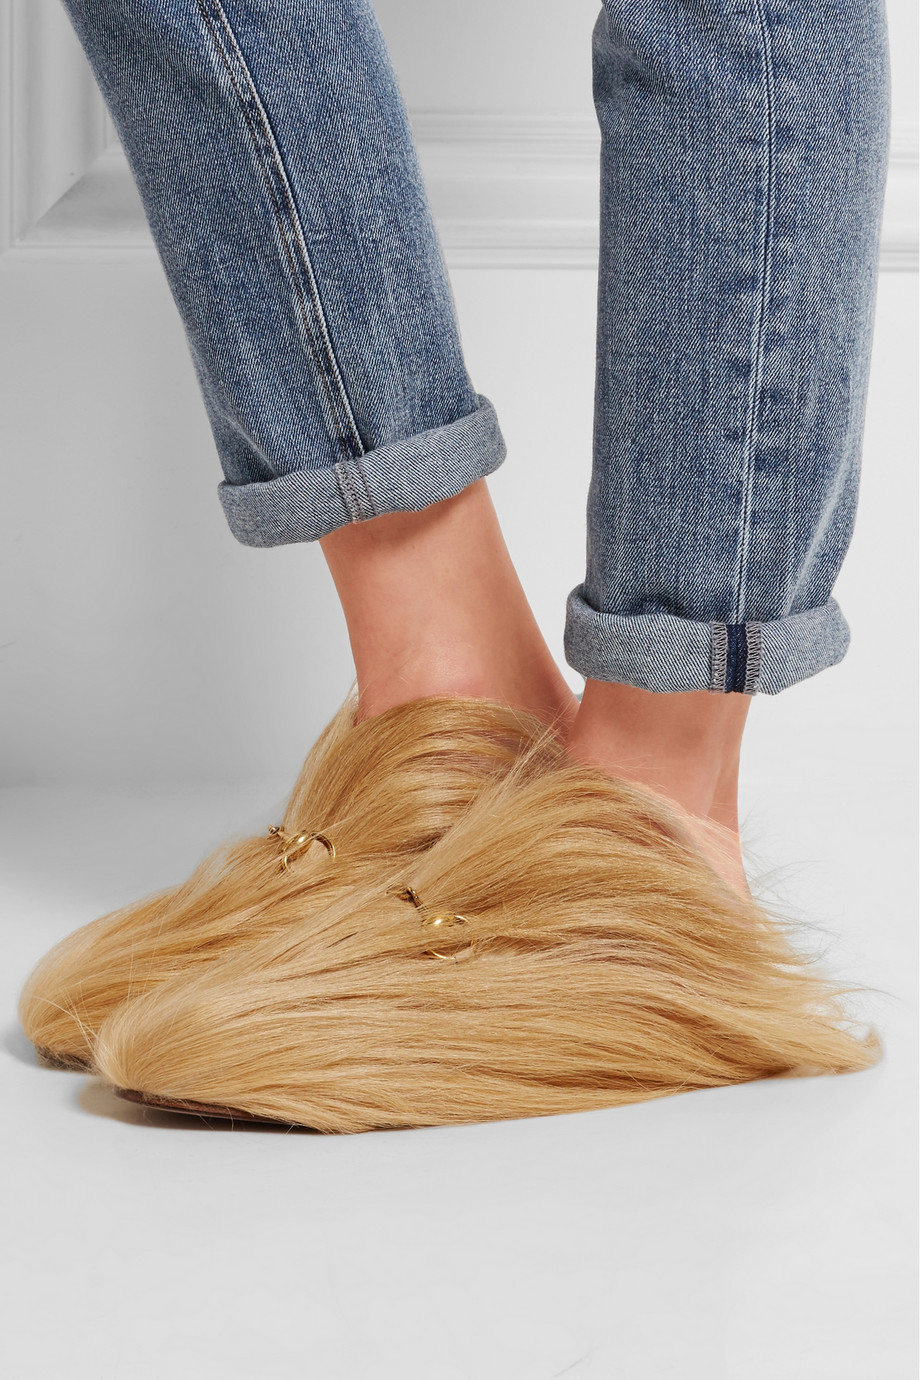 gucci goat hair slippers3.jpg